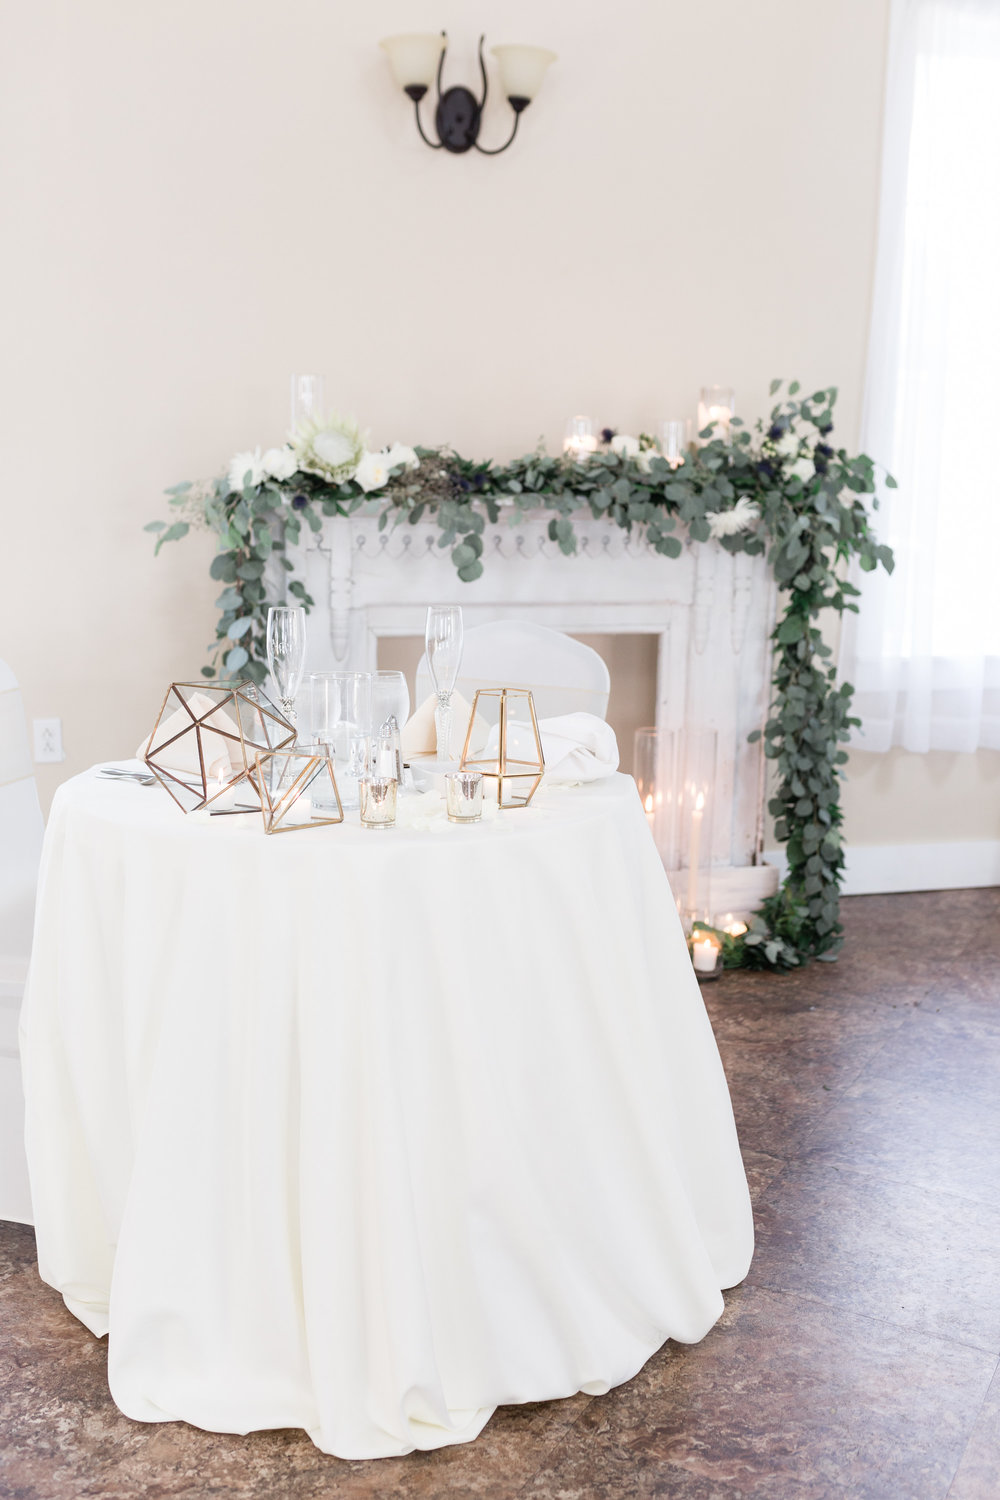 Vintage mantel behind wedding sweetheart table with geo-shape accents for Pittsburgh wedding planned by Exhale Events. Find more wedding inspiration at exhale-events.com!